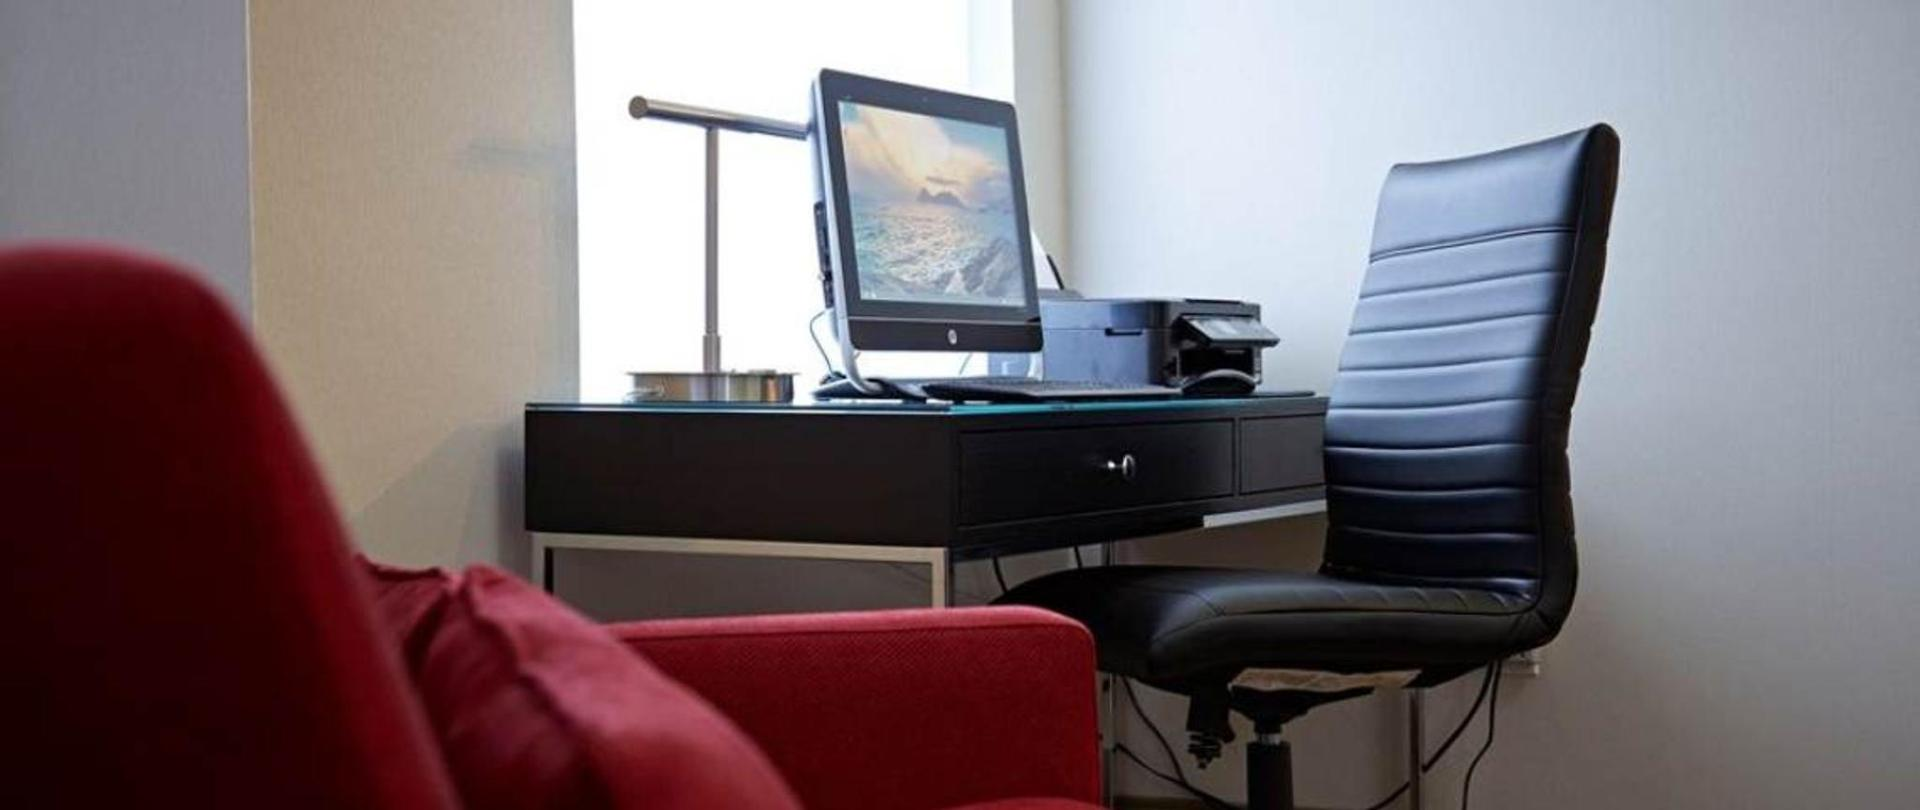 guest-business-centre.jpg.1140x481_default.jpg